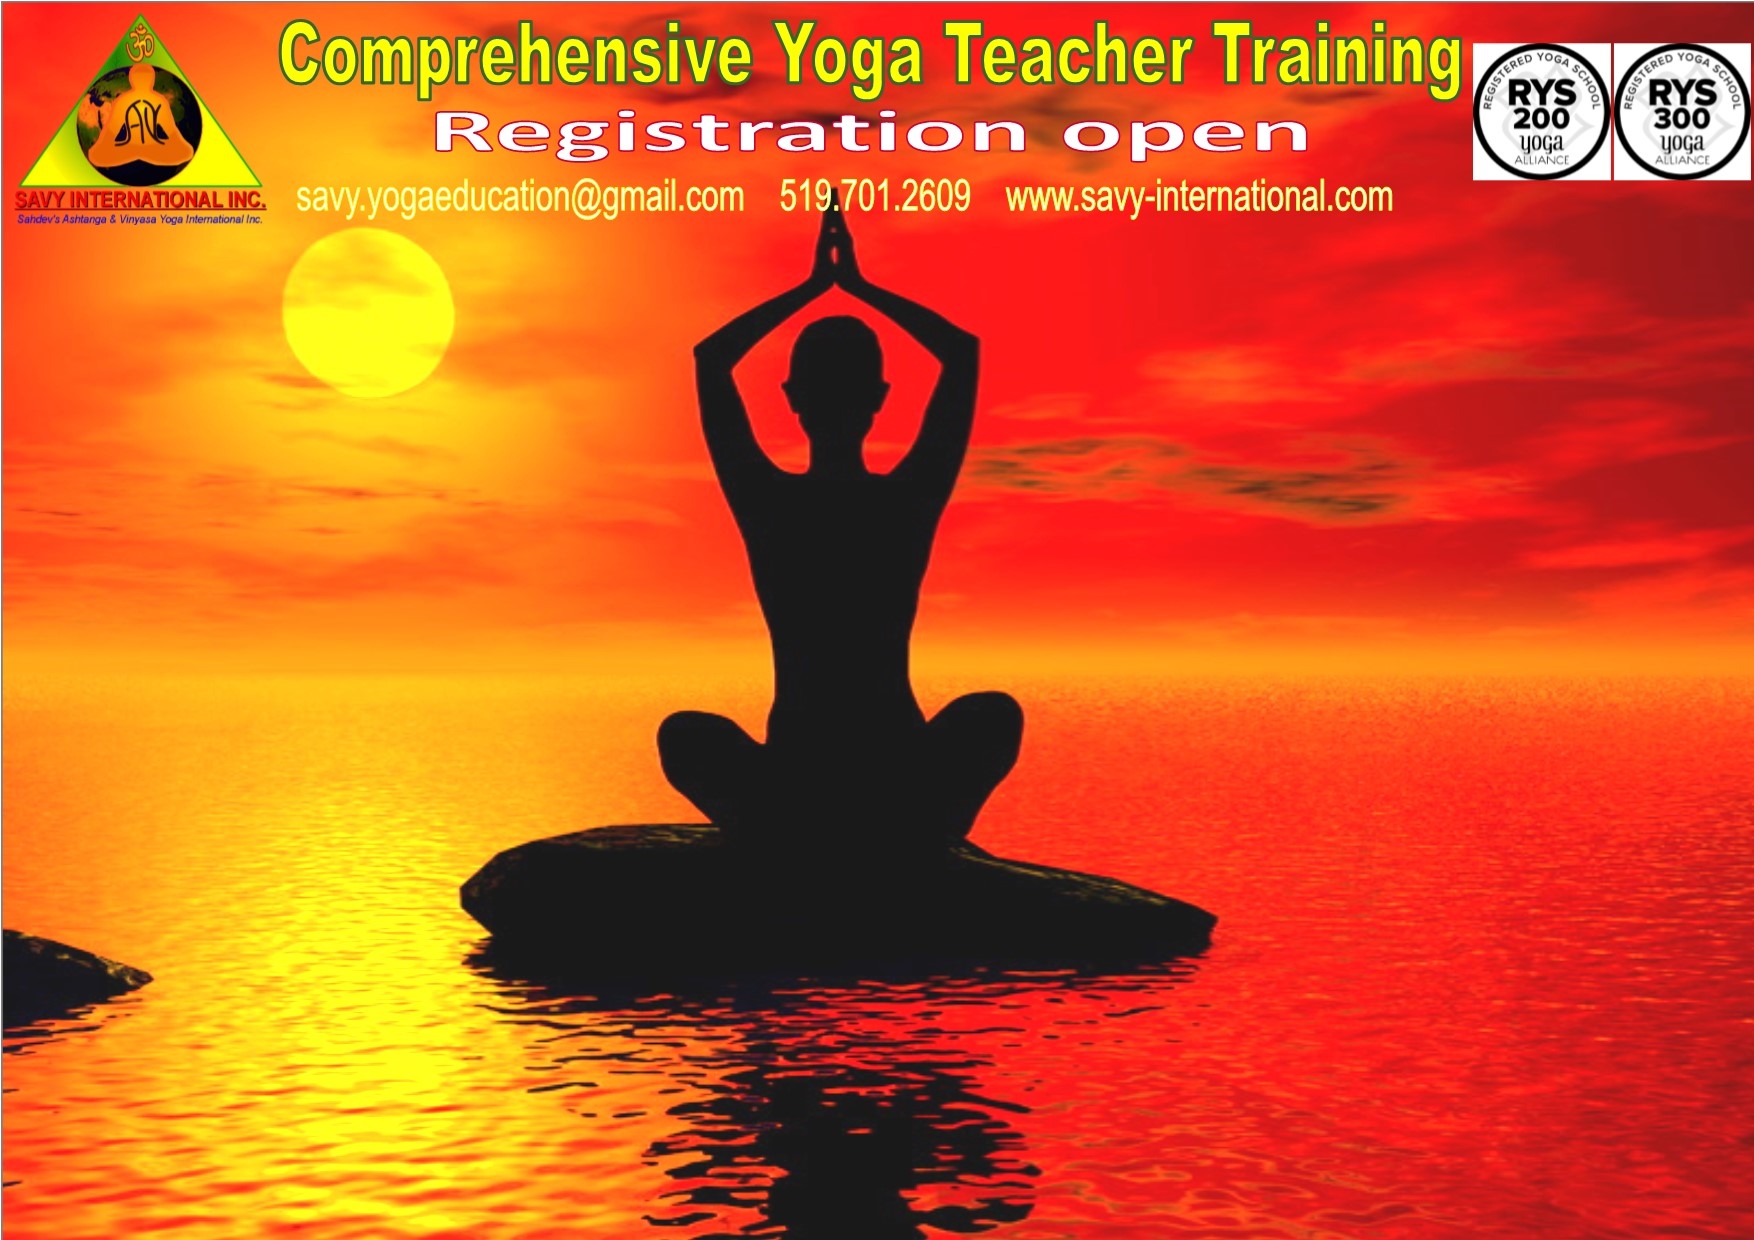 Most Affordable, Comprehensive Yoga Teacher Training London